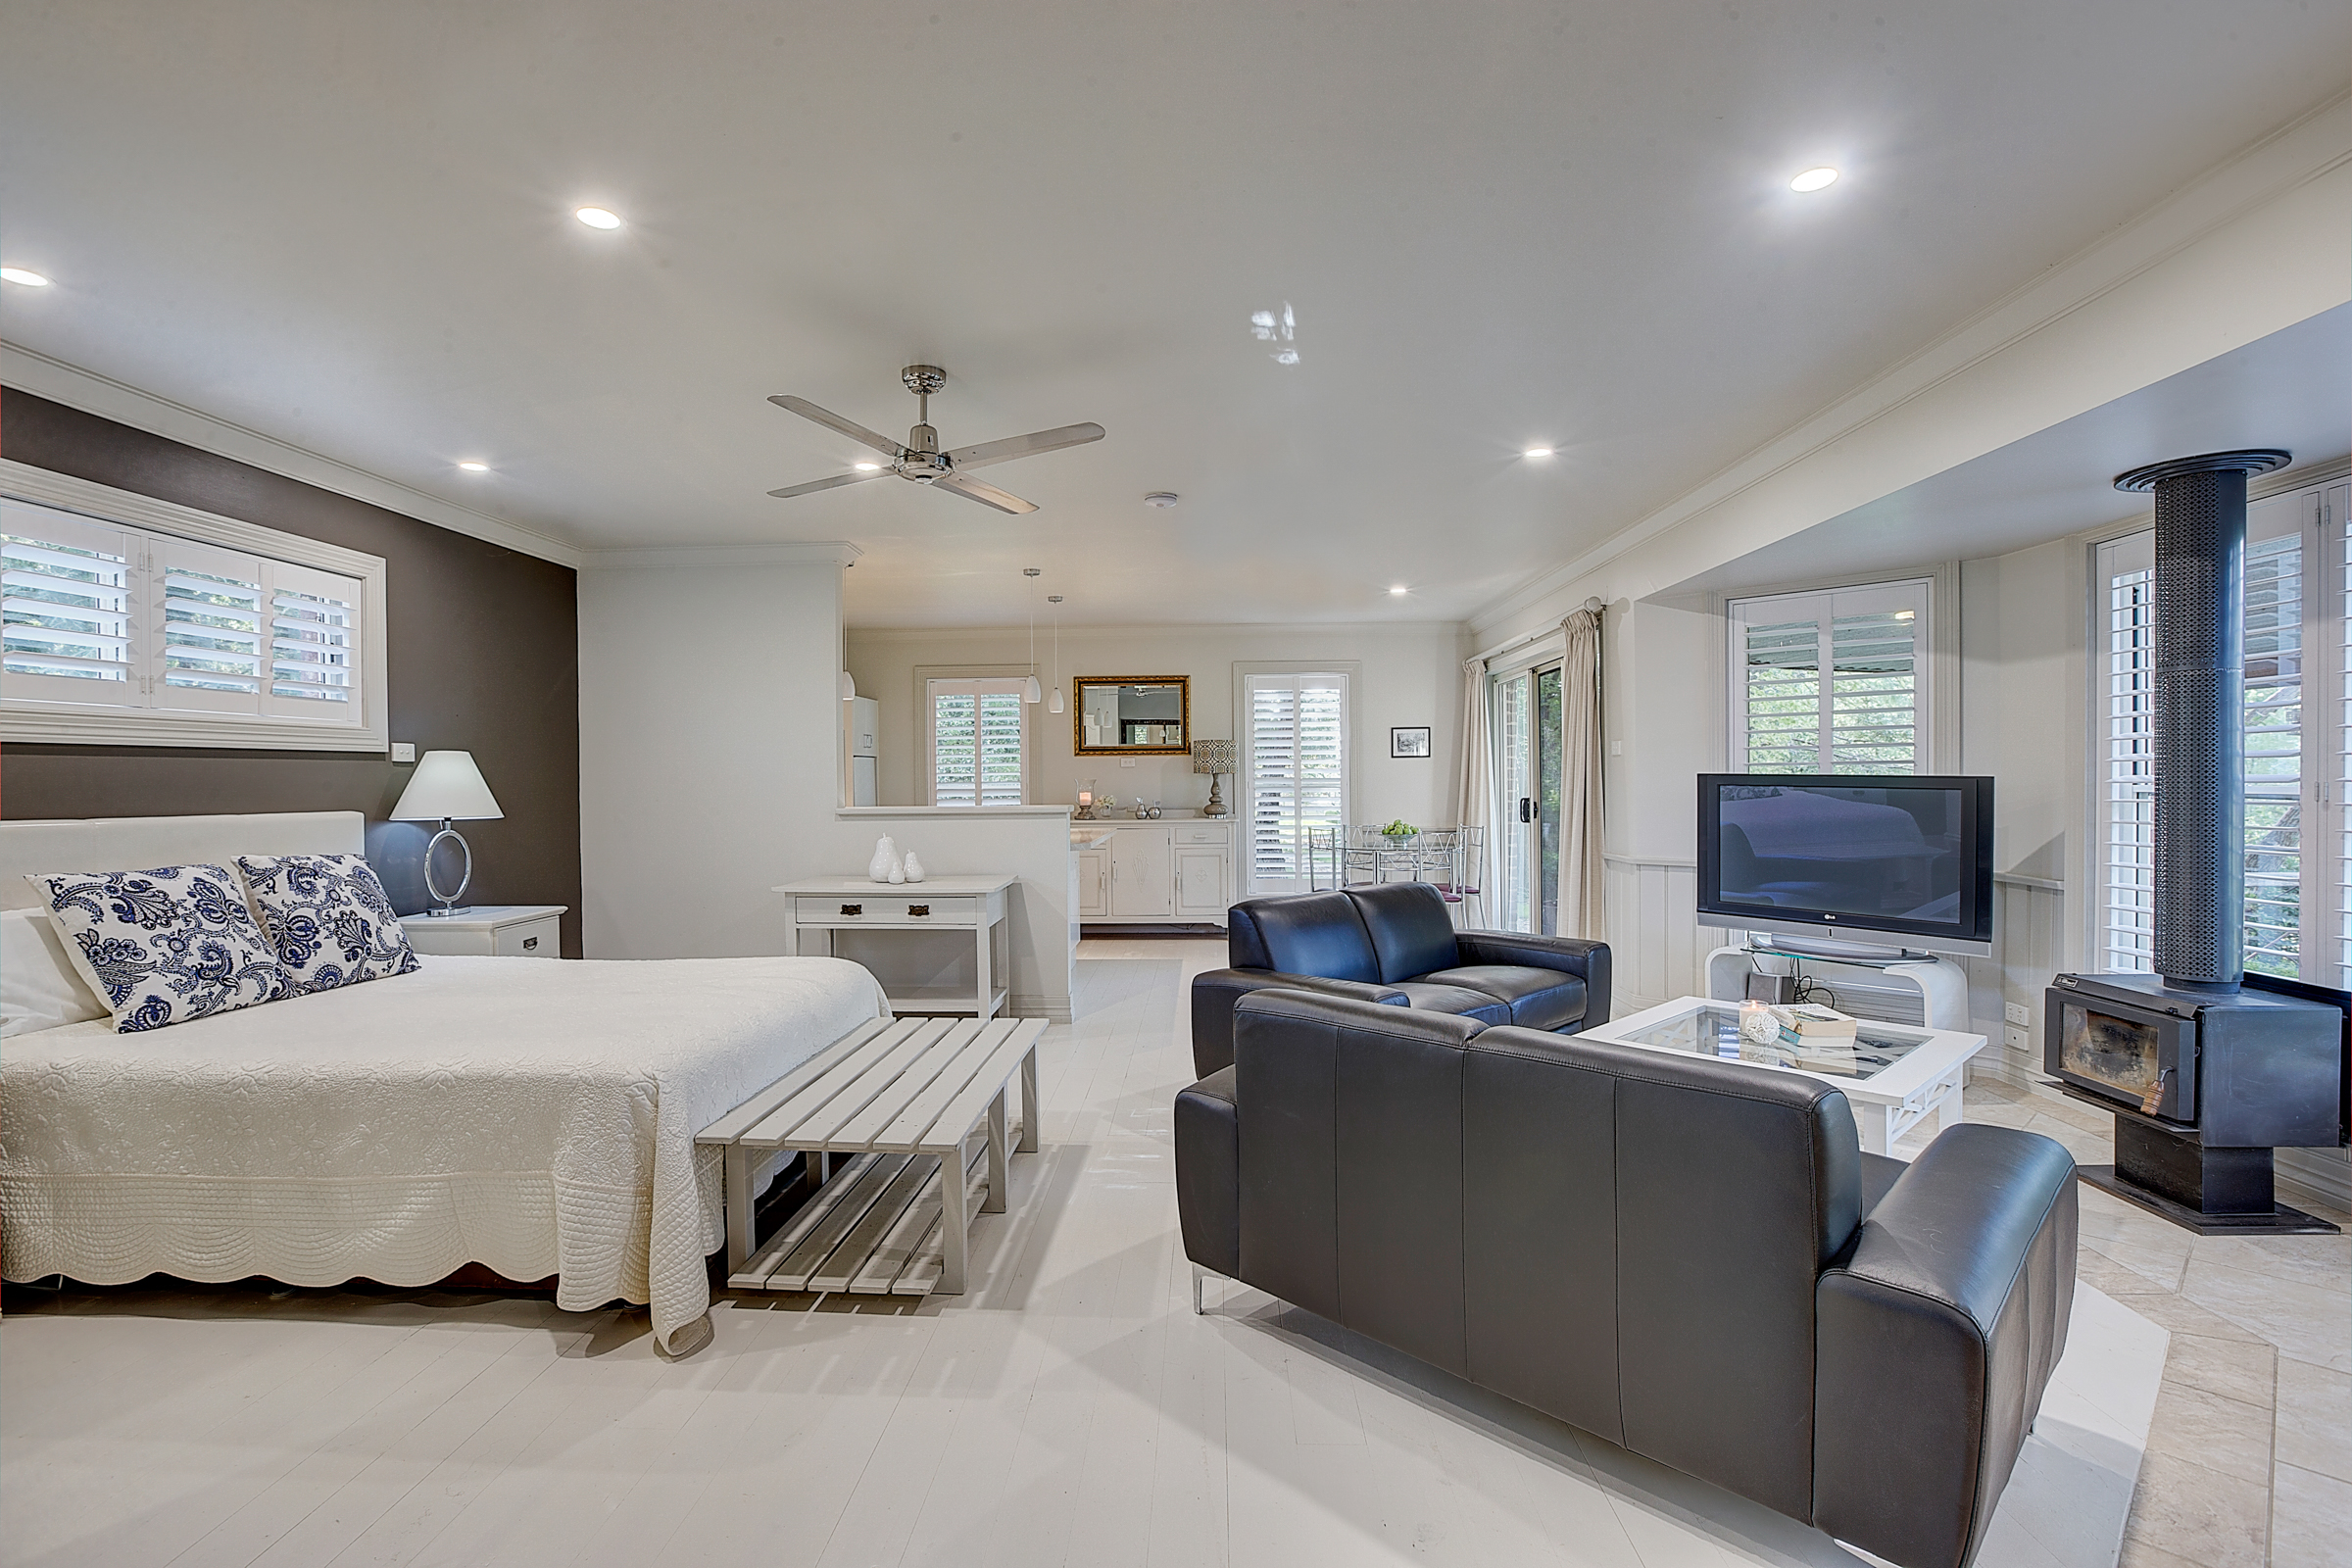 Mudgee Luxury - Evanslea Boutique Cottage 2 nights accommodation, return flights, breakfast and return airport transfers.ex Sydney or TareeStarting from $489 per person twin share.★★★★★